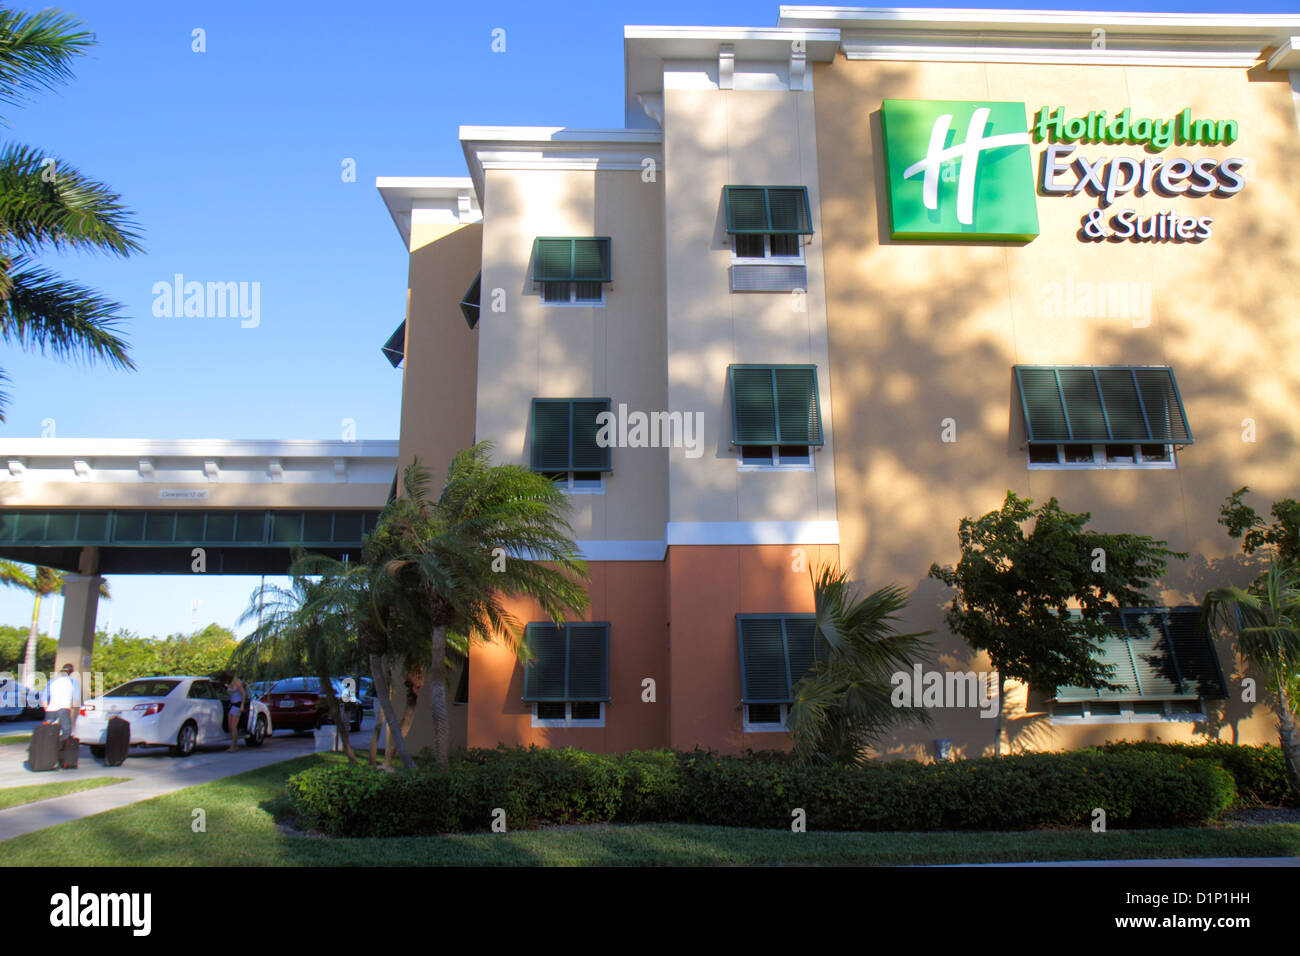 holiday inn and suites stock photos holiday inn and suites stock images alamy. Black Bedroom Furniture Sets. Home Design Ideas